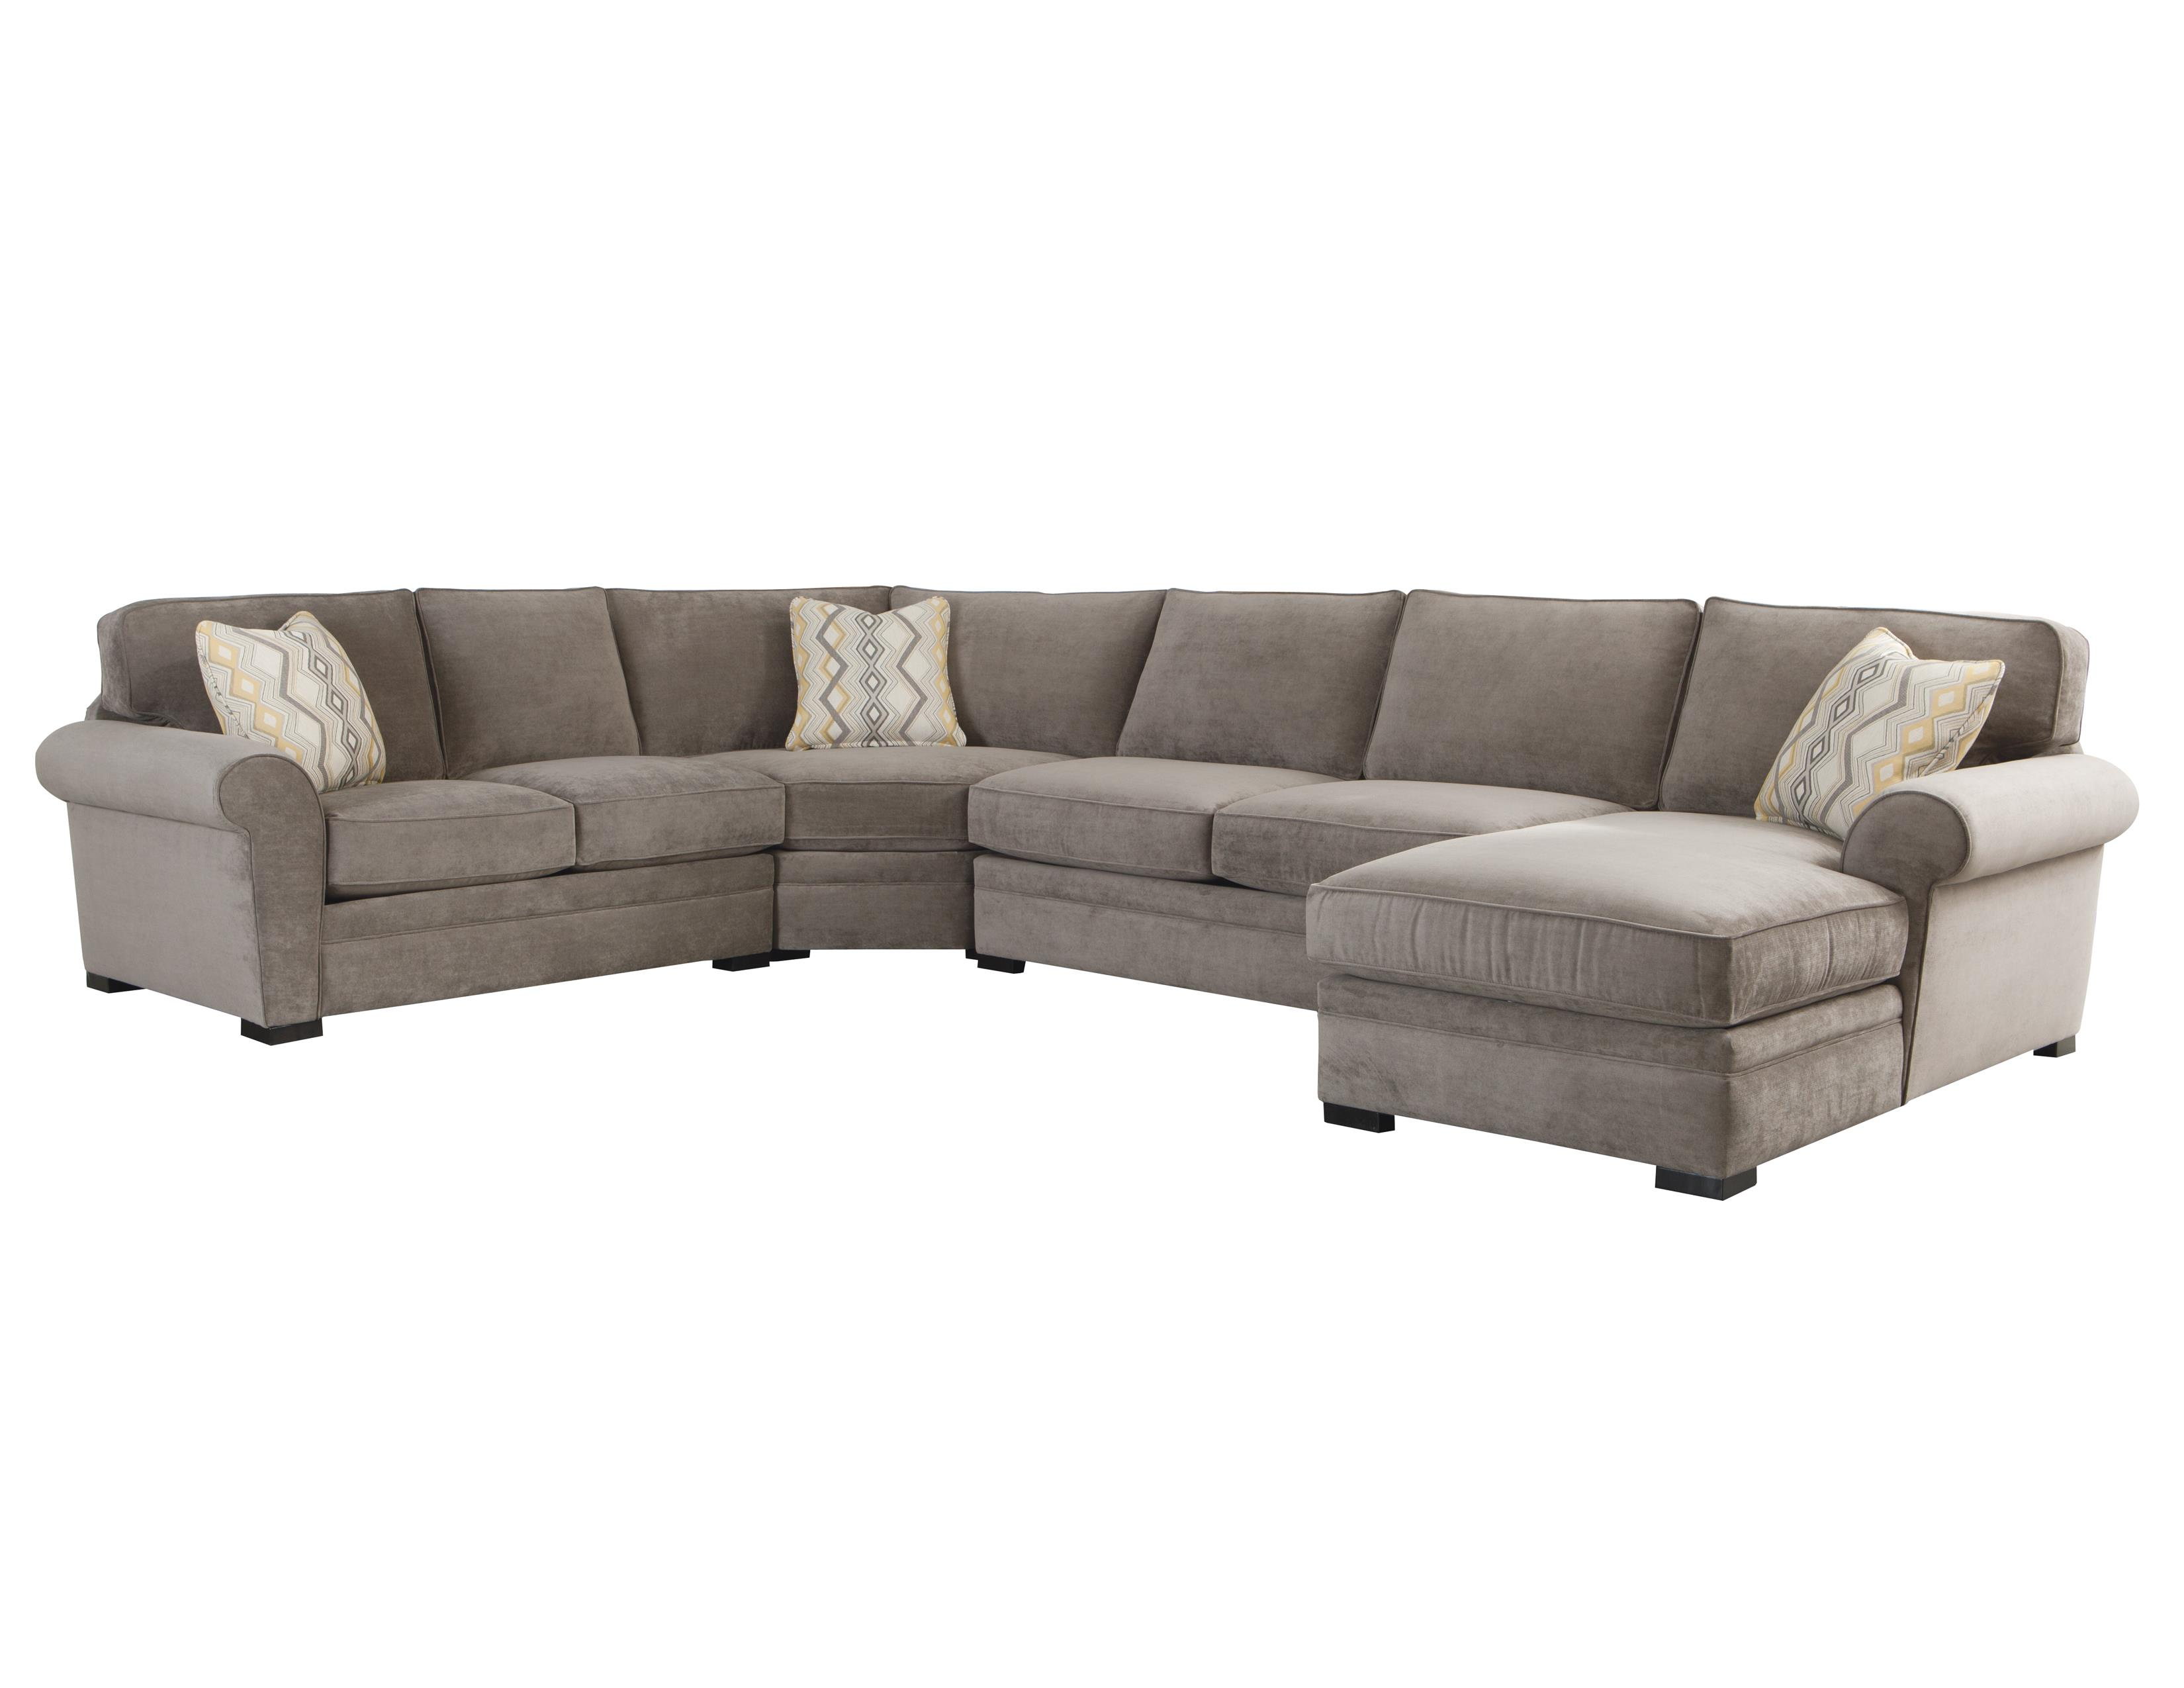 Superieur Jonathan Louis Choices   Orion Sectional   Item Number: 401